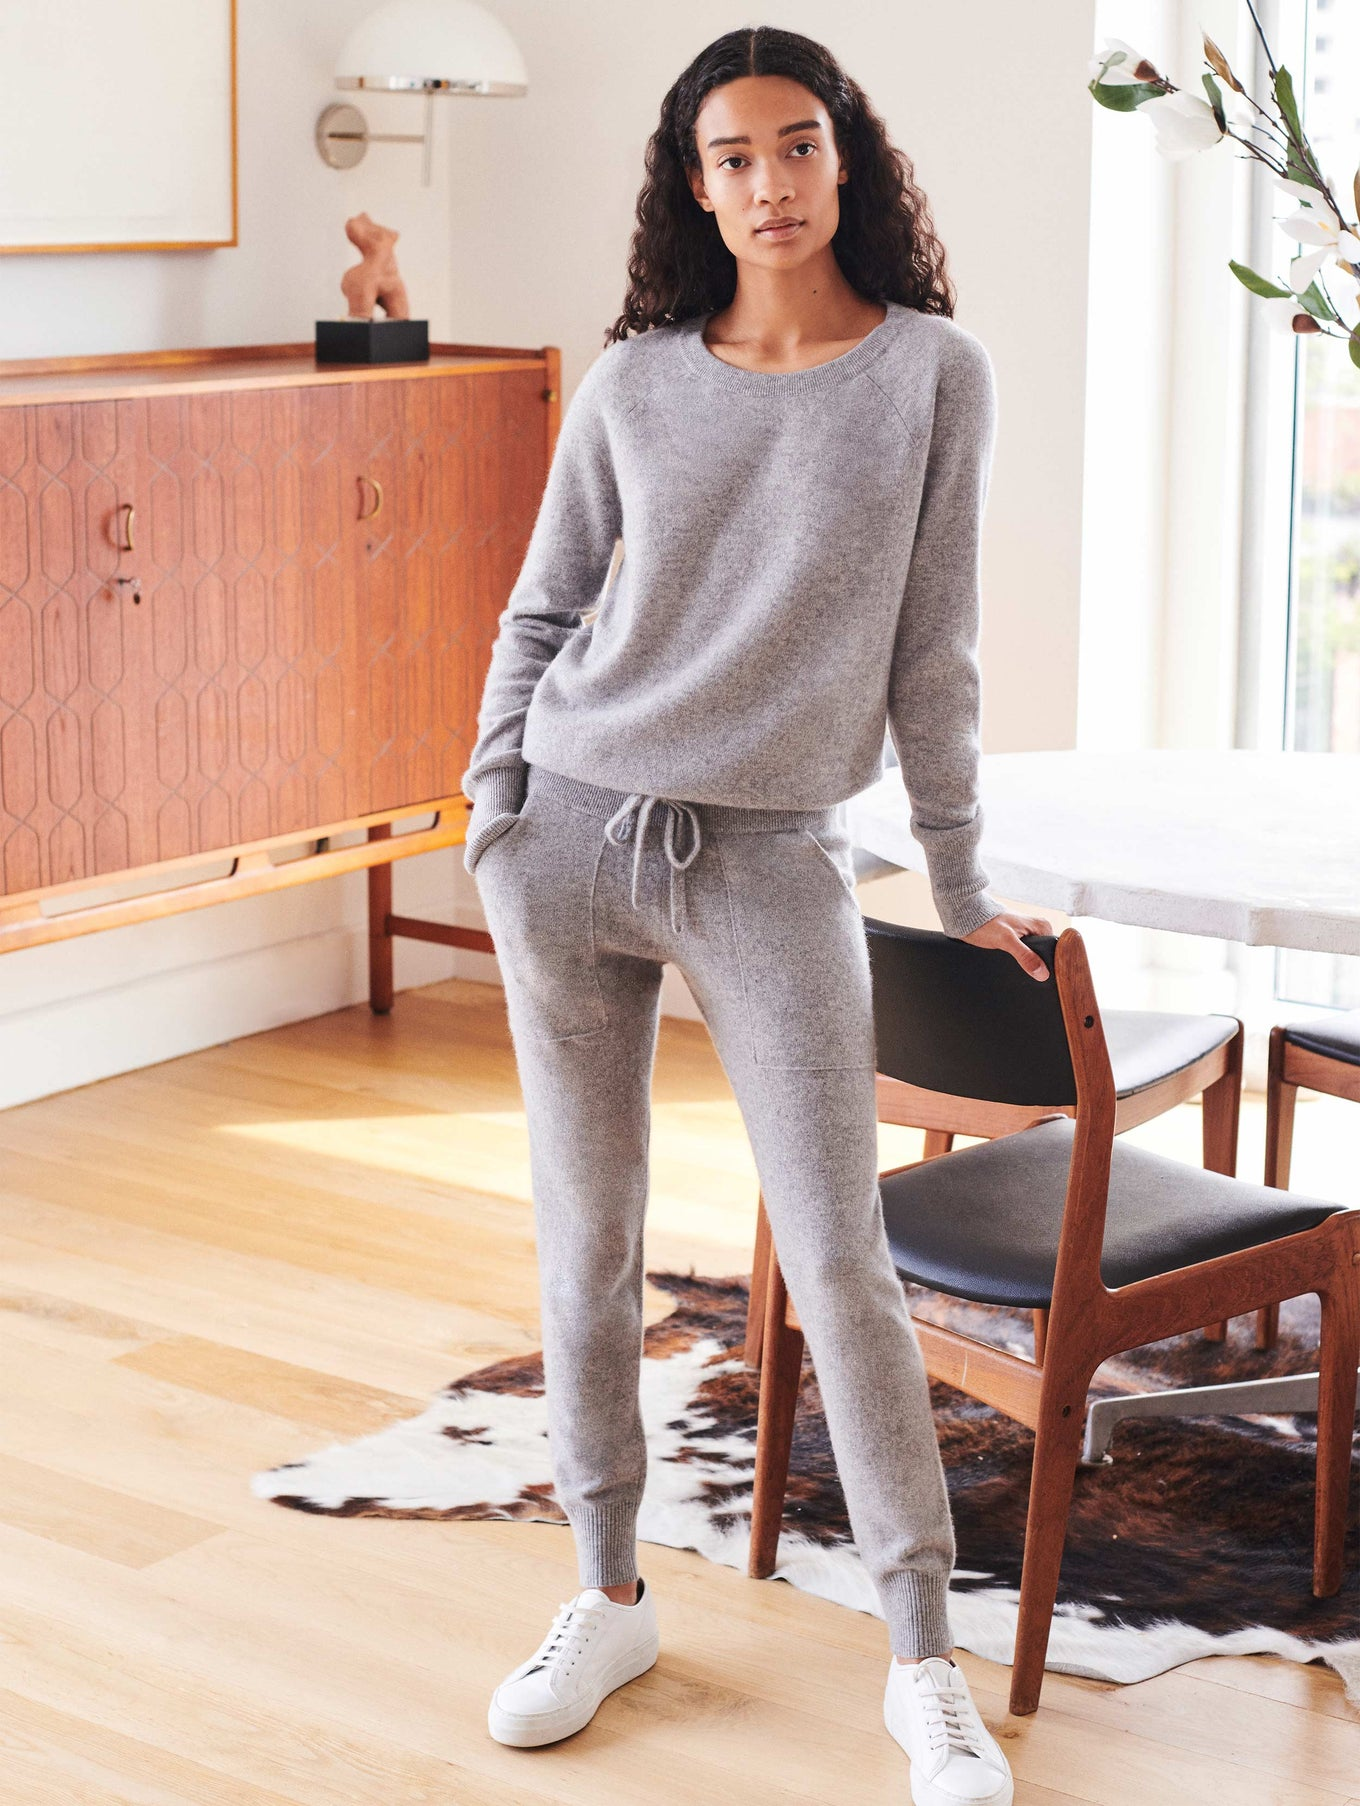 Chic Cashmere Sweats Bundle